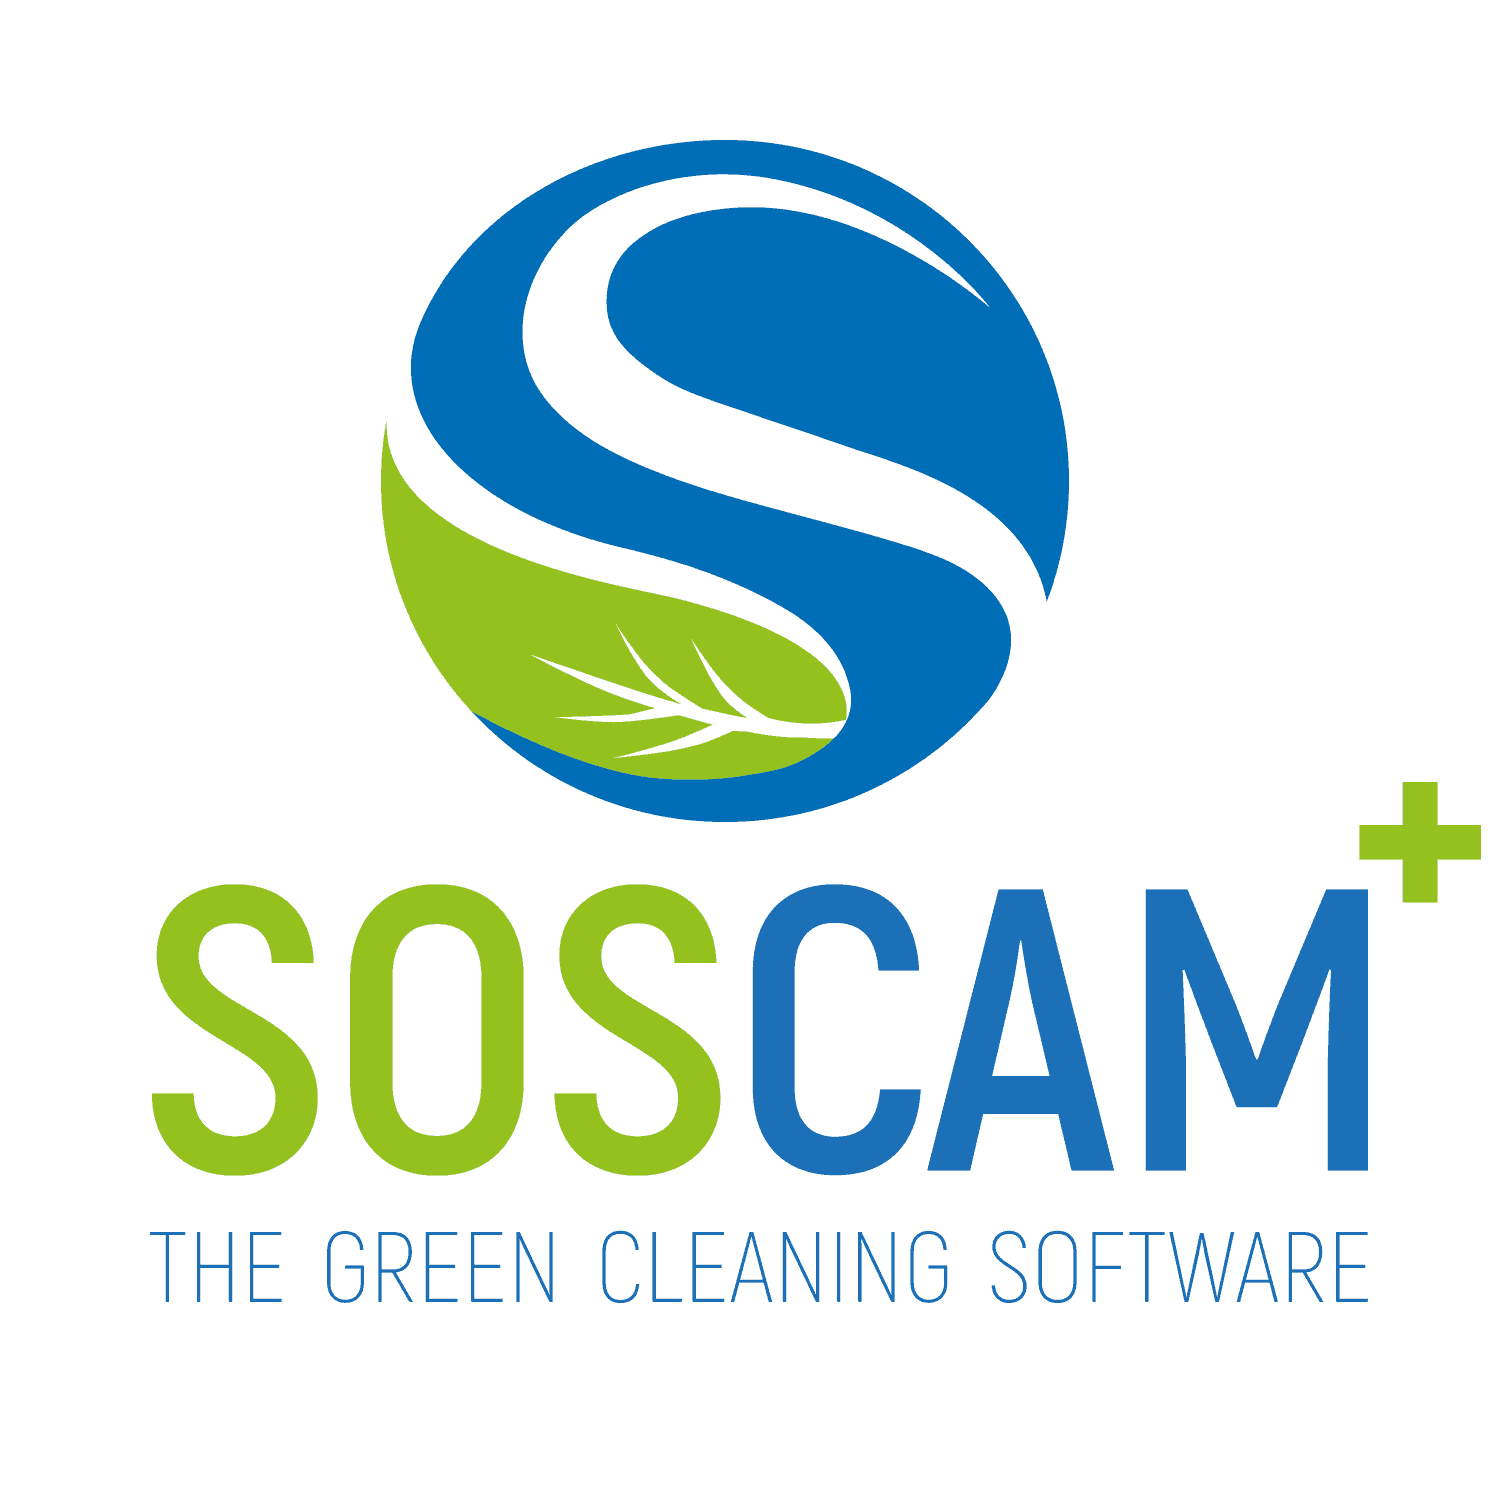 SOS-CAM: The green cleaning software